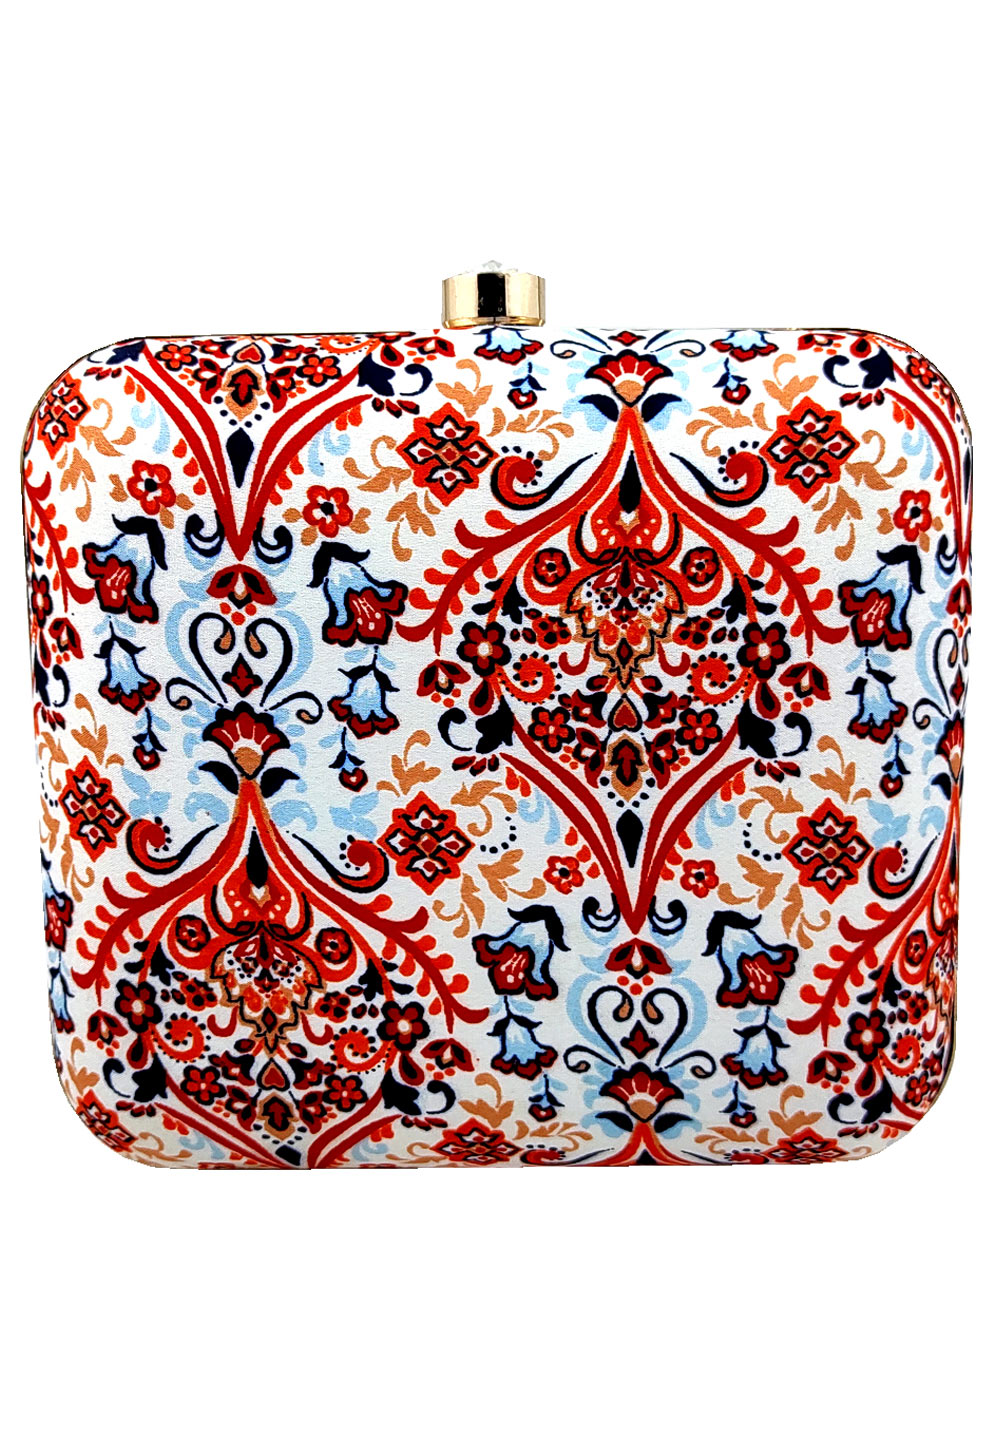 Off White Synthetic Printed Clutch 225667